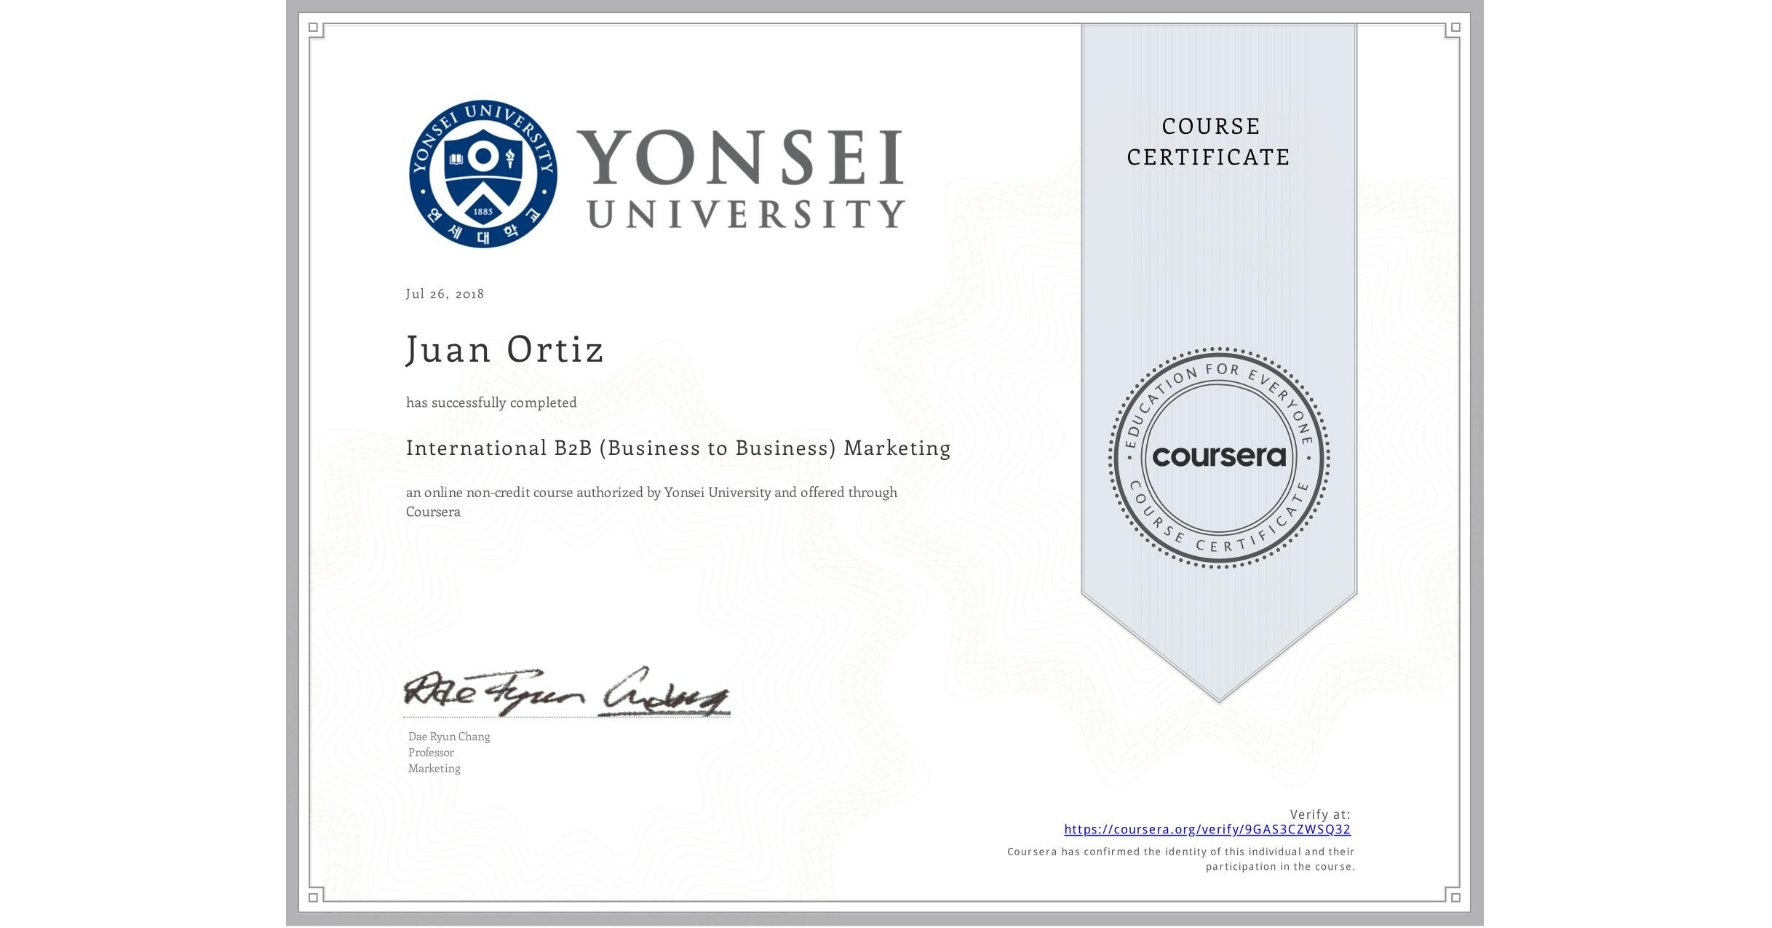 View certificate for Juan Ortiz, International B2B (Business to Business) Marketing, an online non-credit course authorized by Yonsei University and offered through Coursera